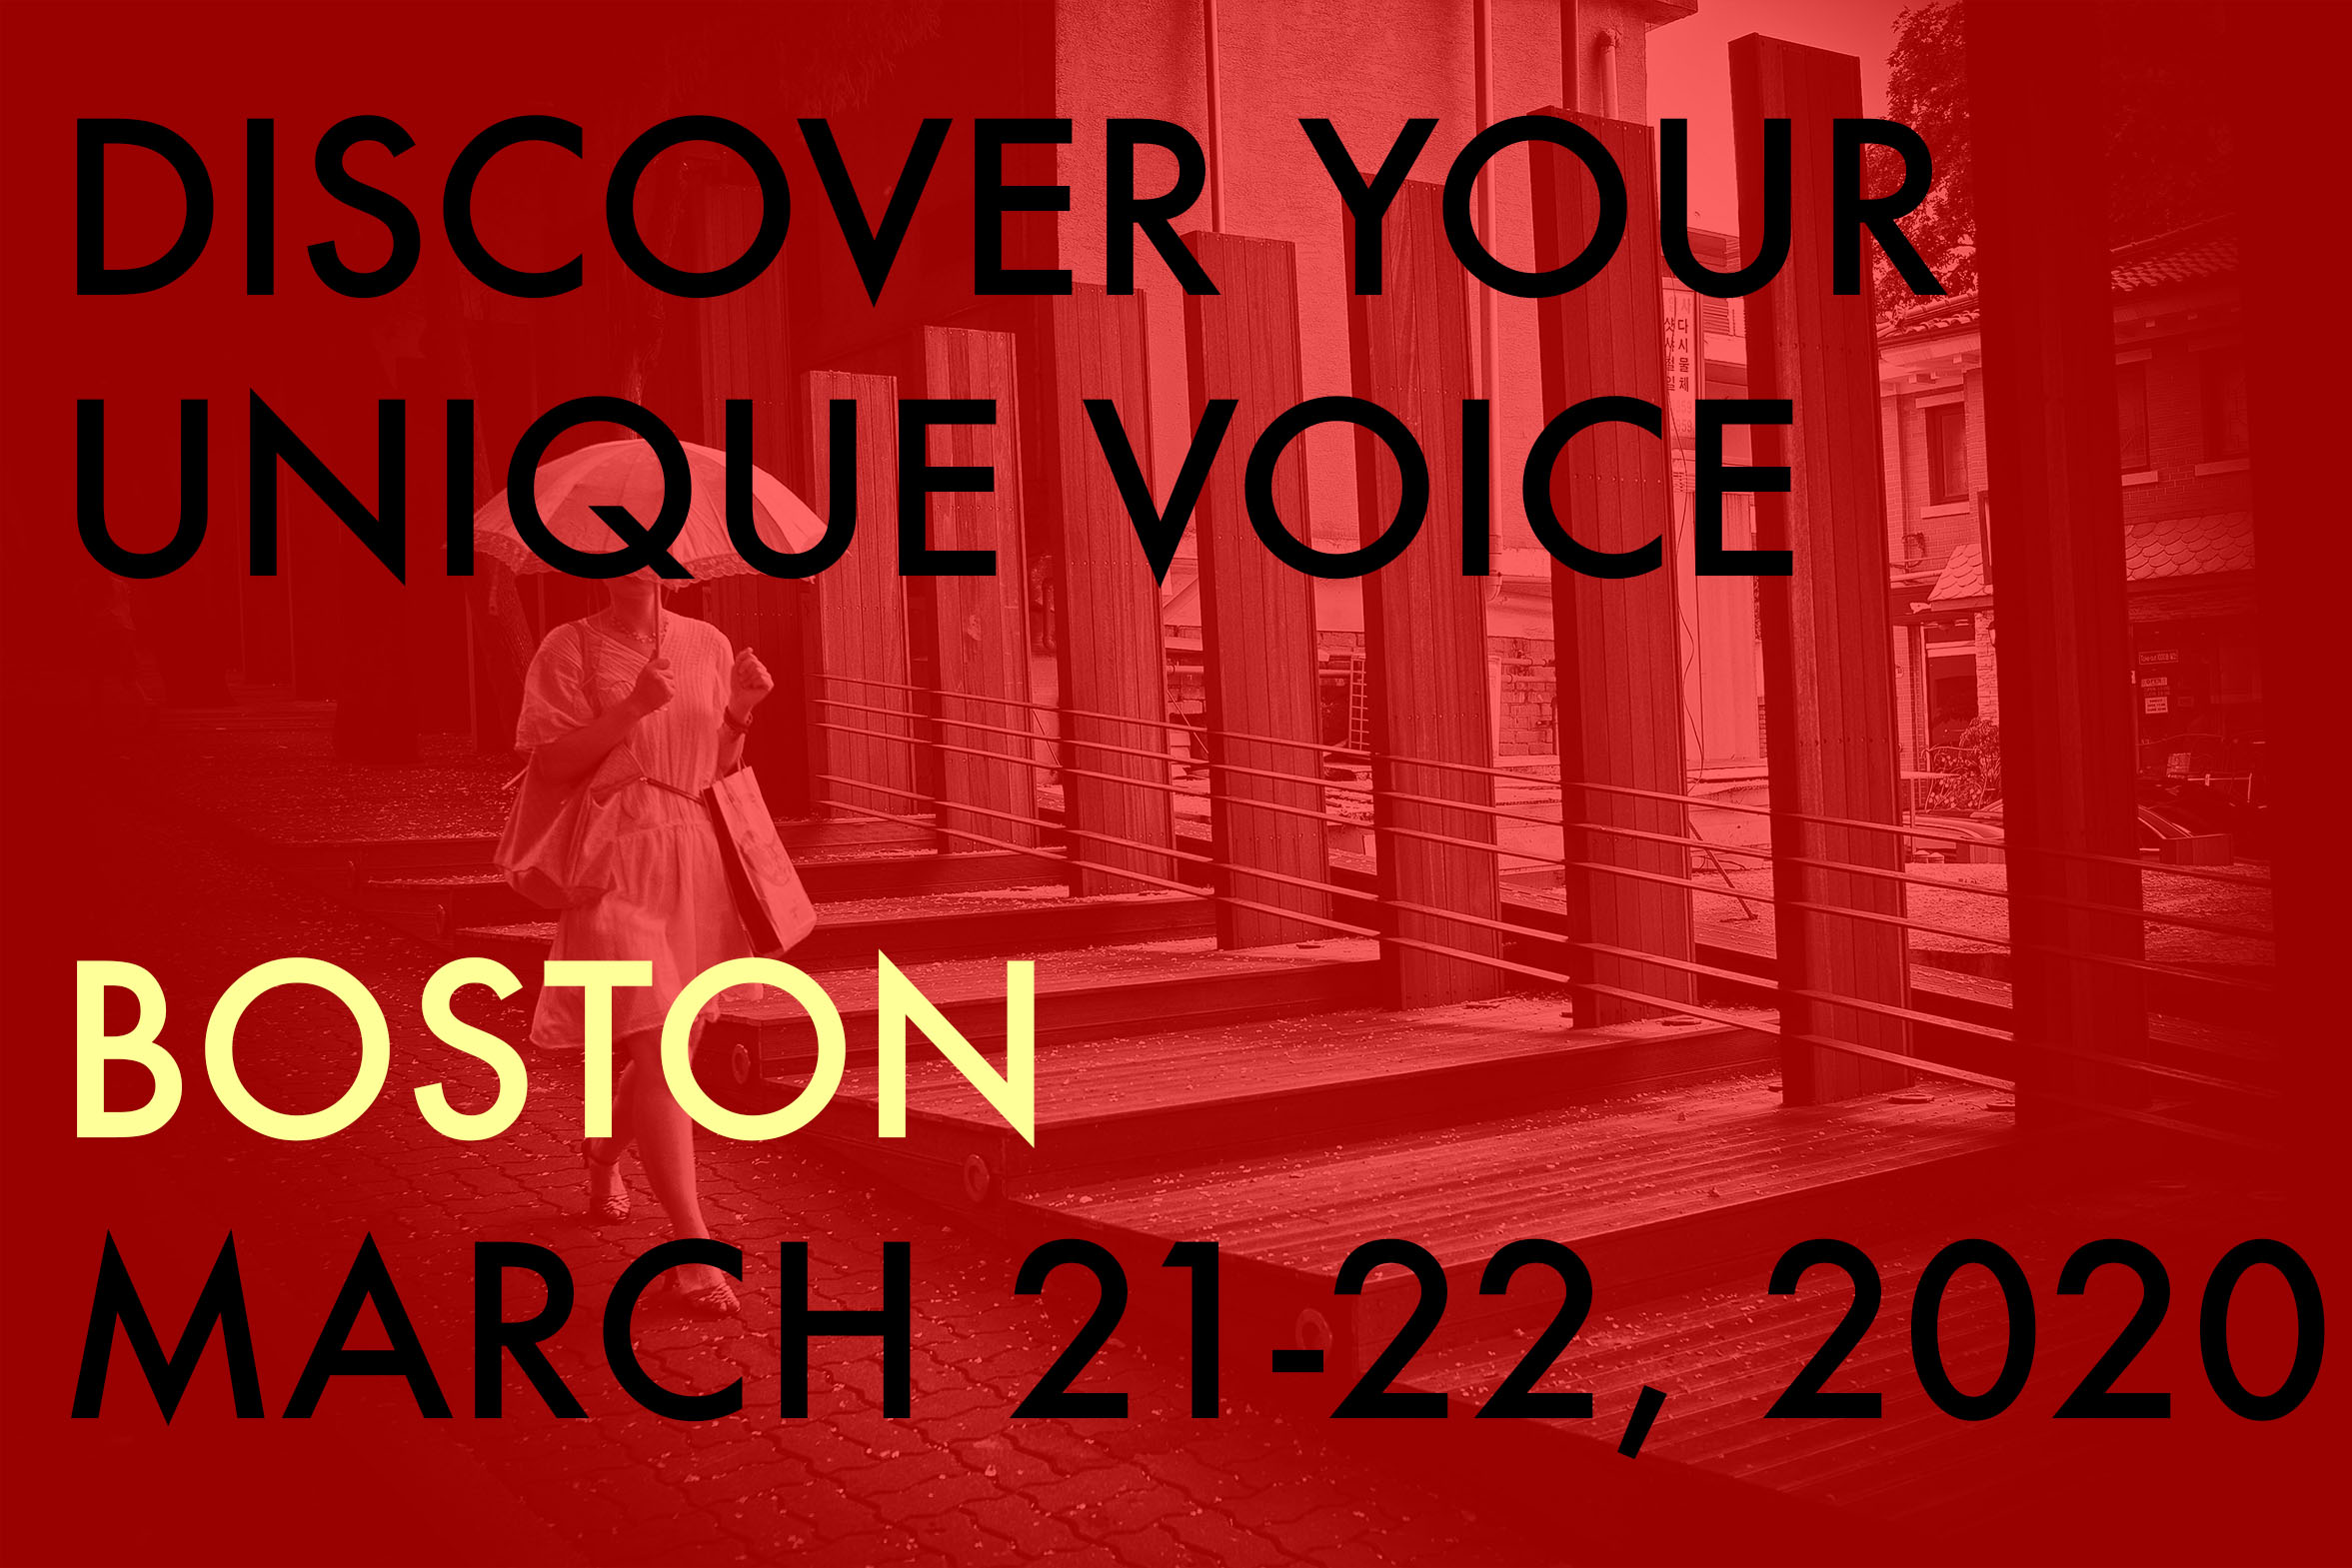 BOSTON Discover Your Unique Voice in Photography Workshop (March 21-22, 2020)